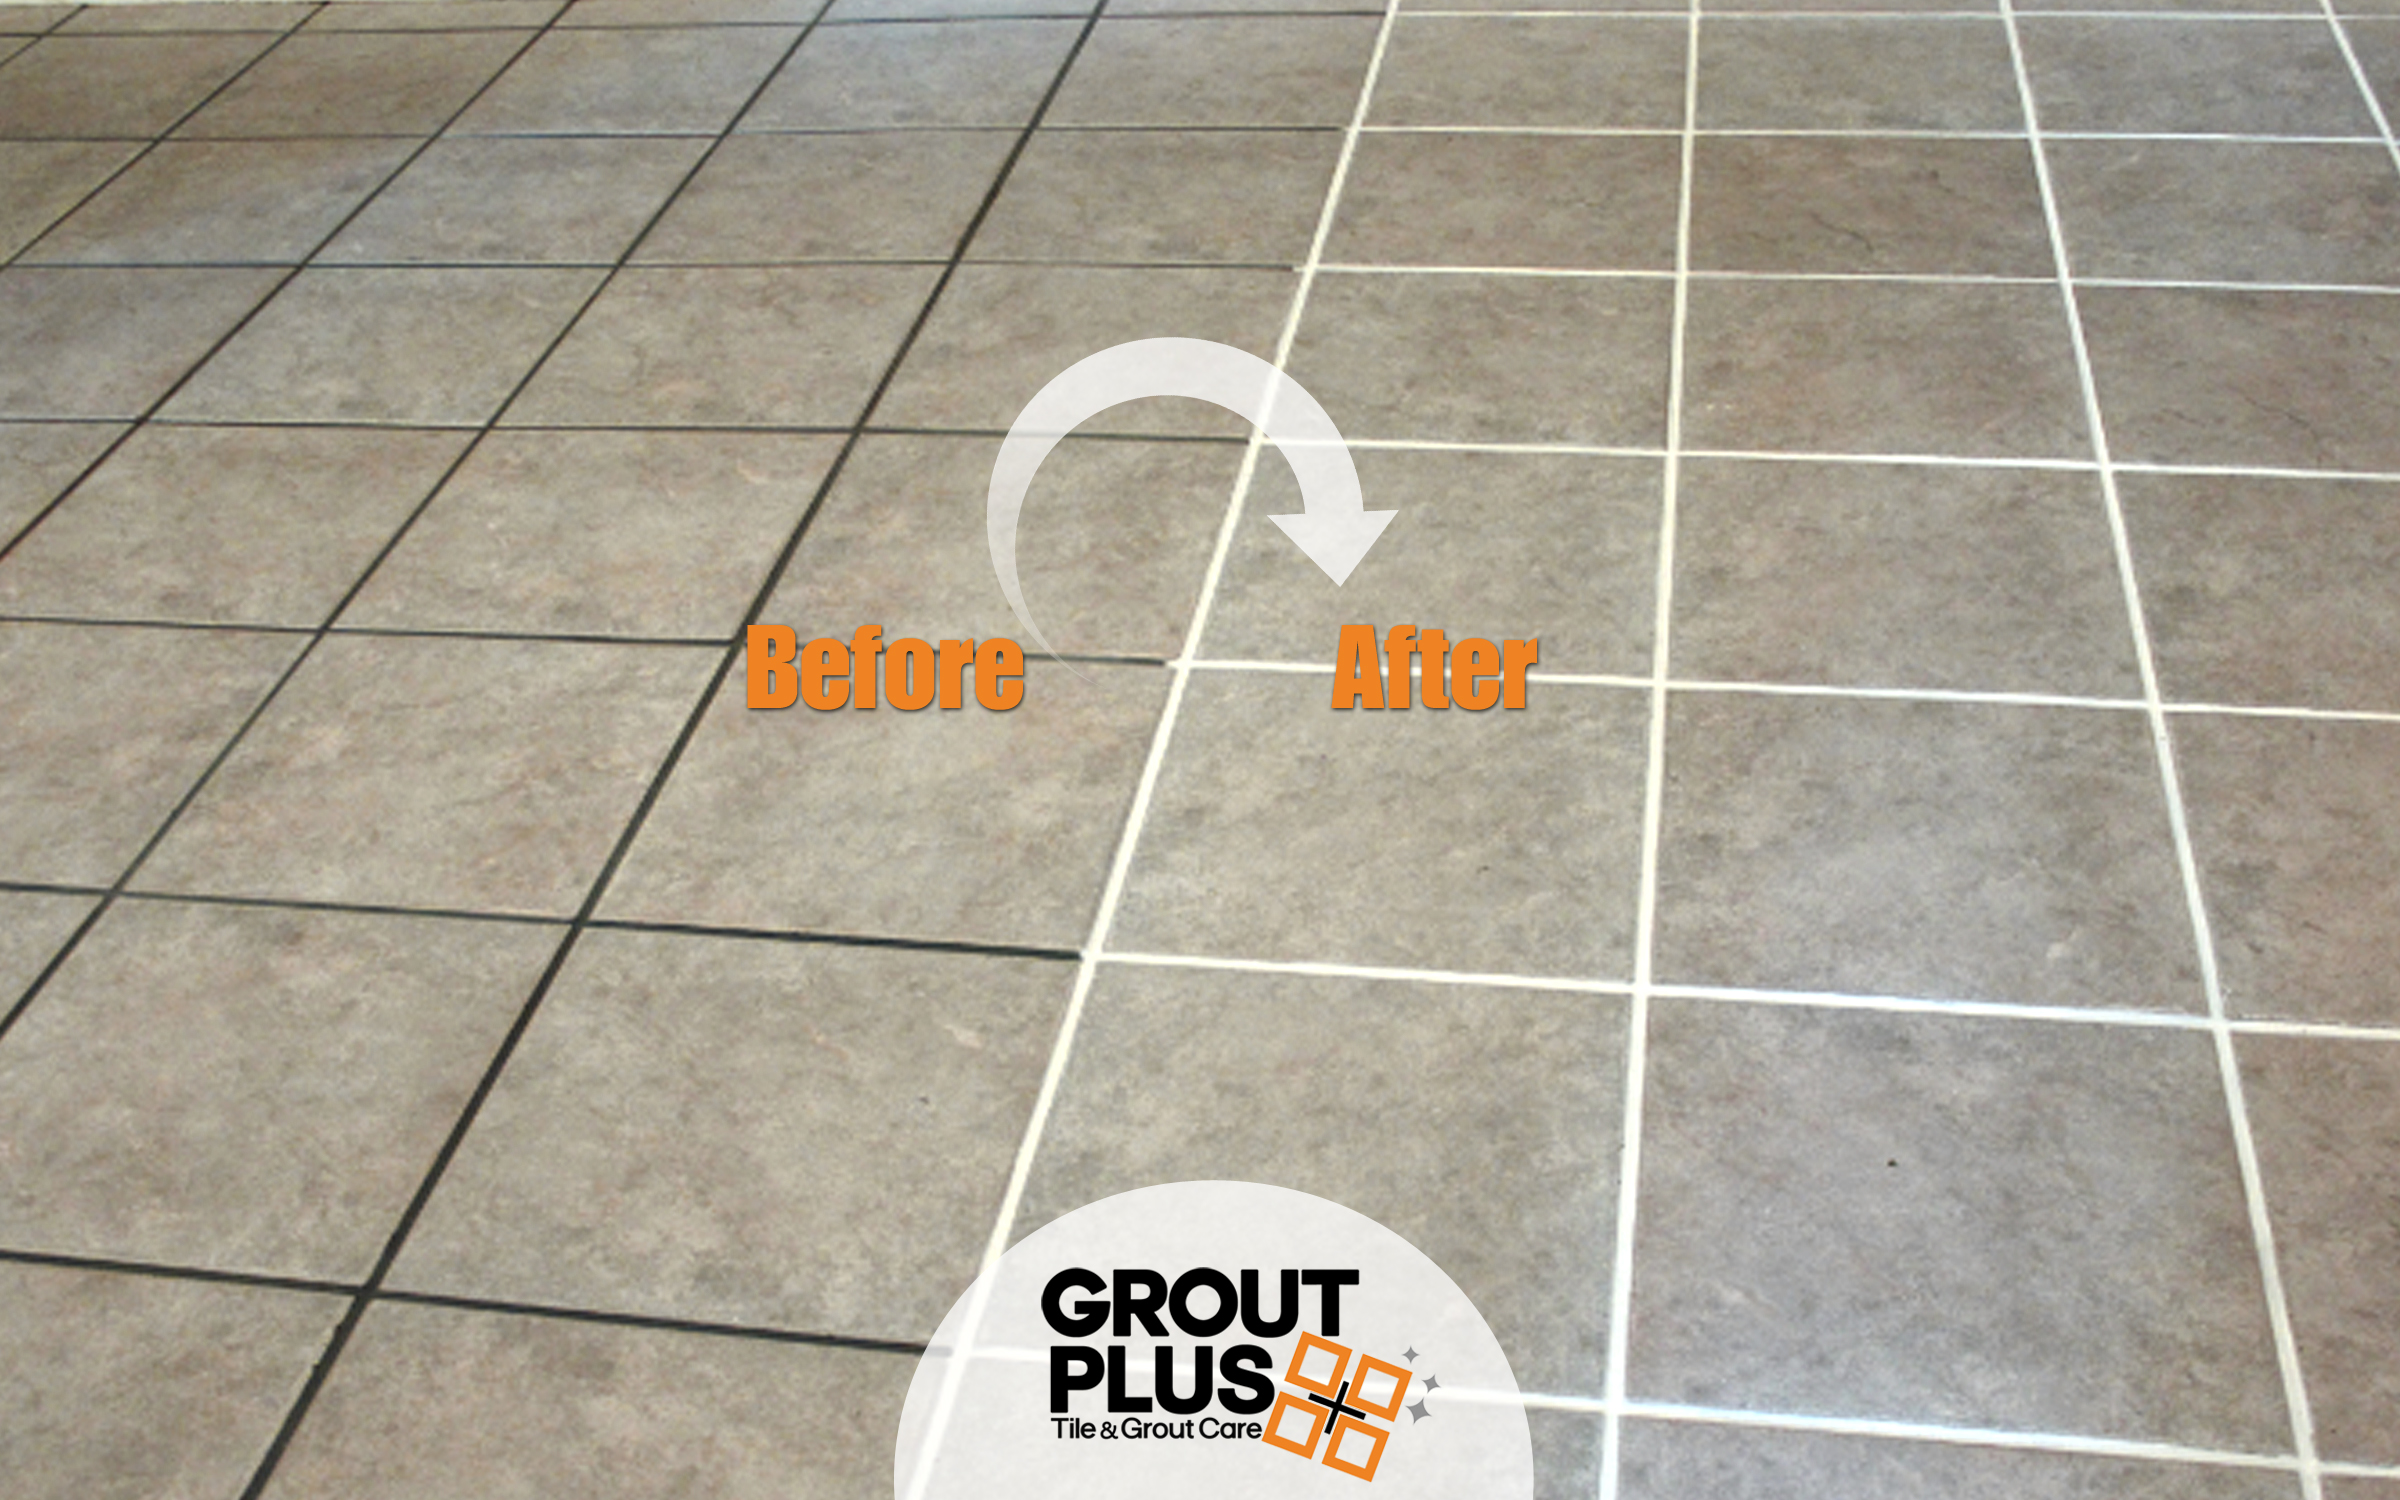 Grout Plus Before After Tile Grout3.jpg